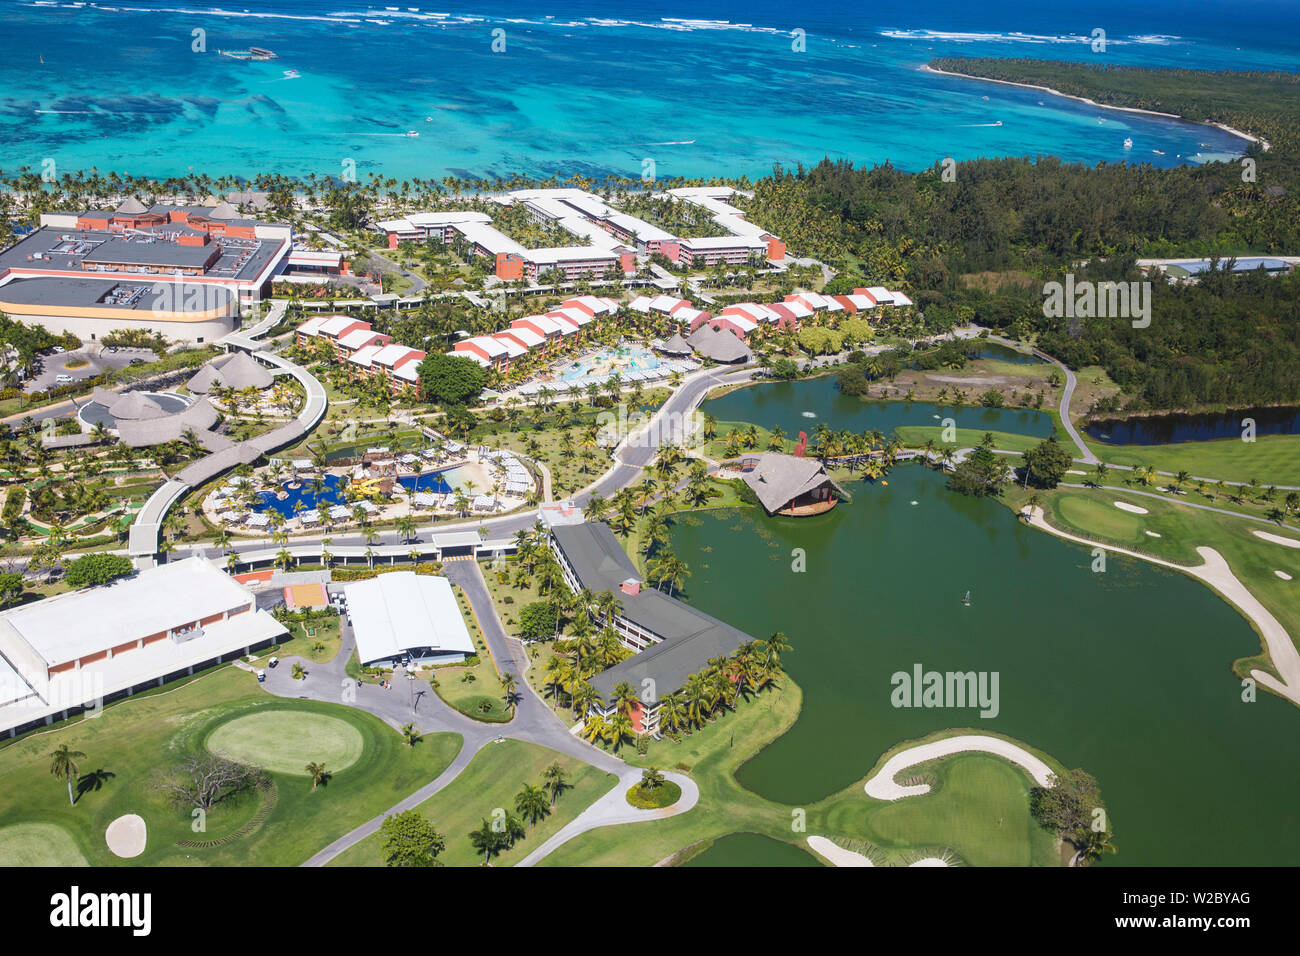 Dominican Republic Punta Cana View Of â Barcelo Bavaro Palace Deluxe Hotel And The Lakes Golf Course By P D Dye Stock Photo Alamy